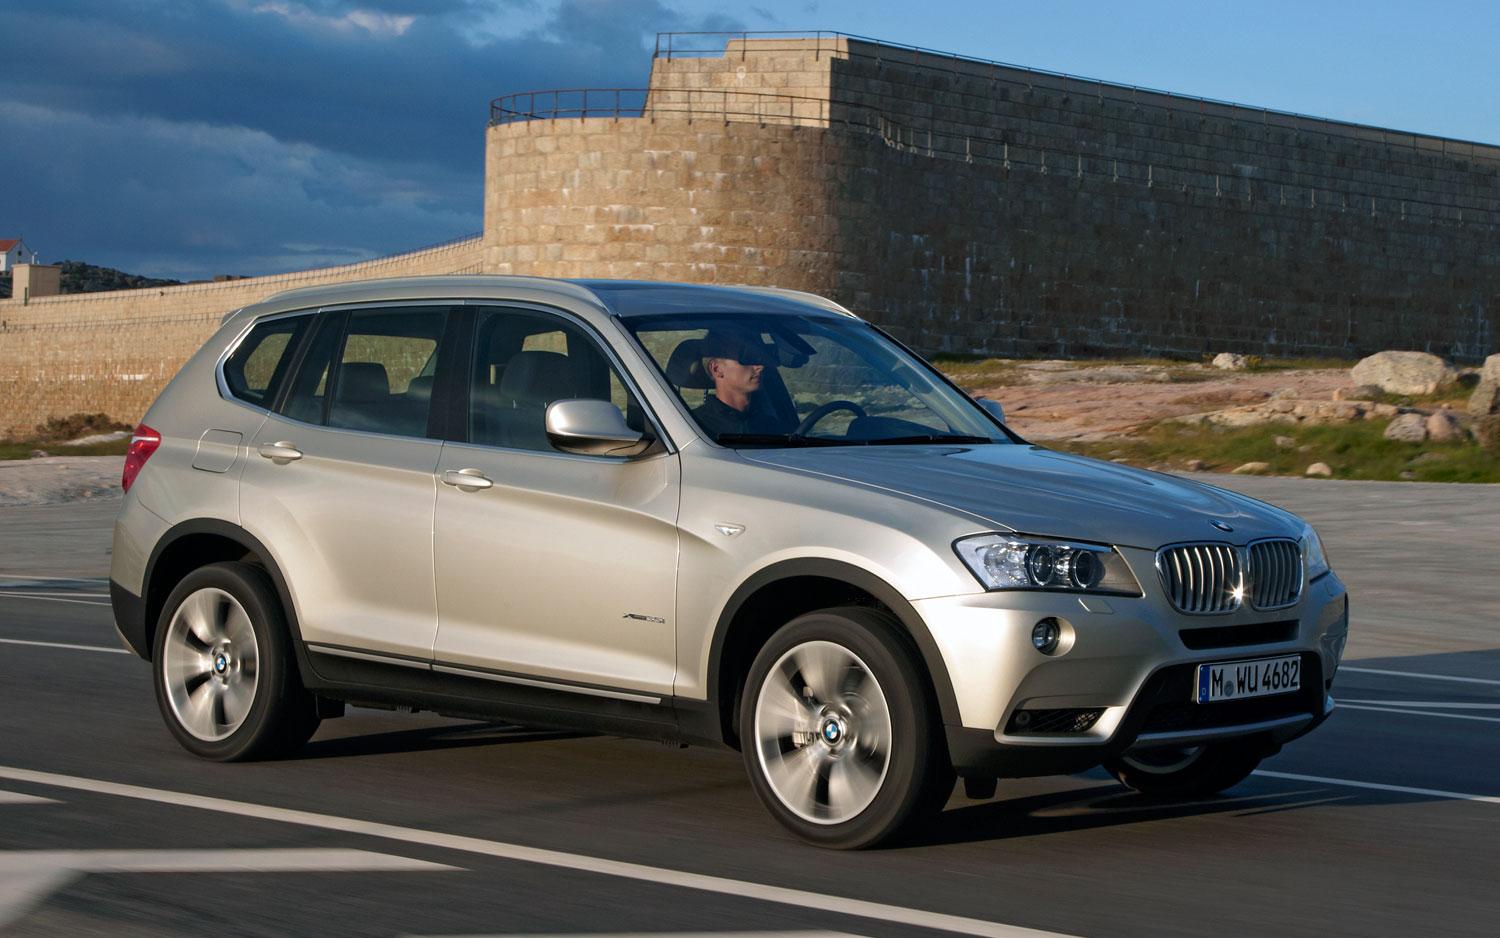 BMW X3 sDrive20i 2012 photo - 3